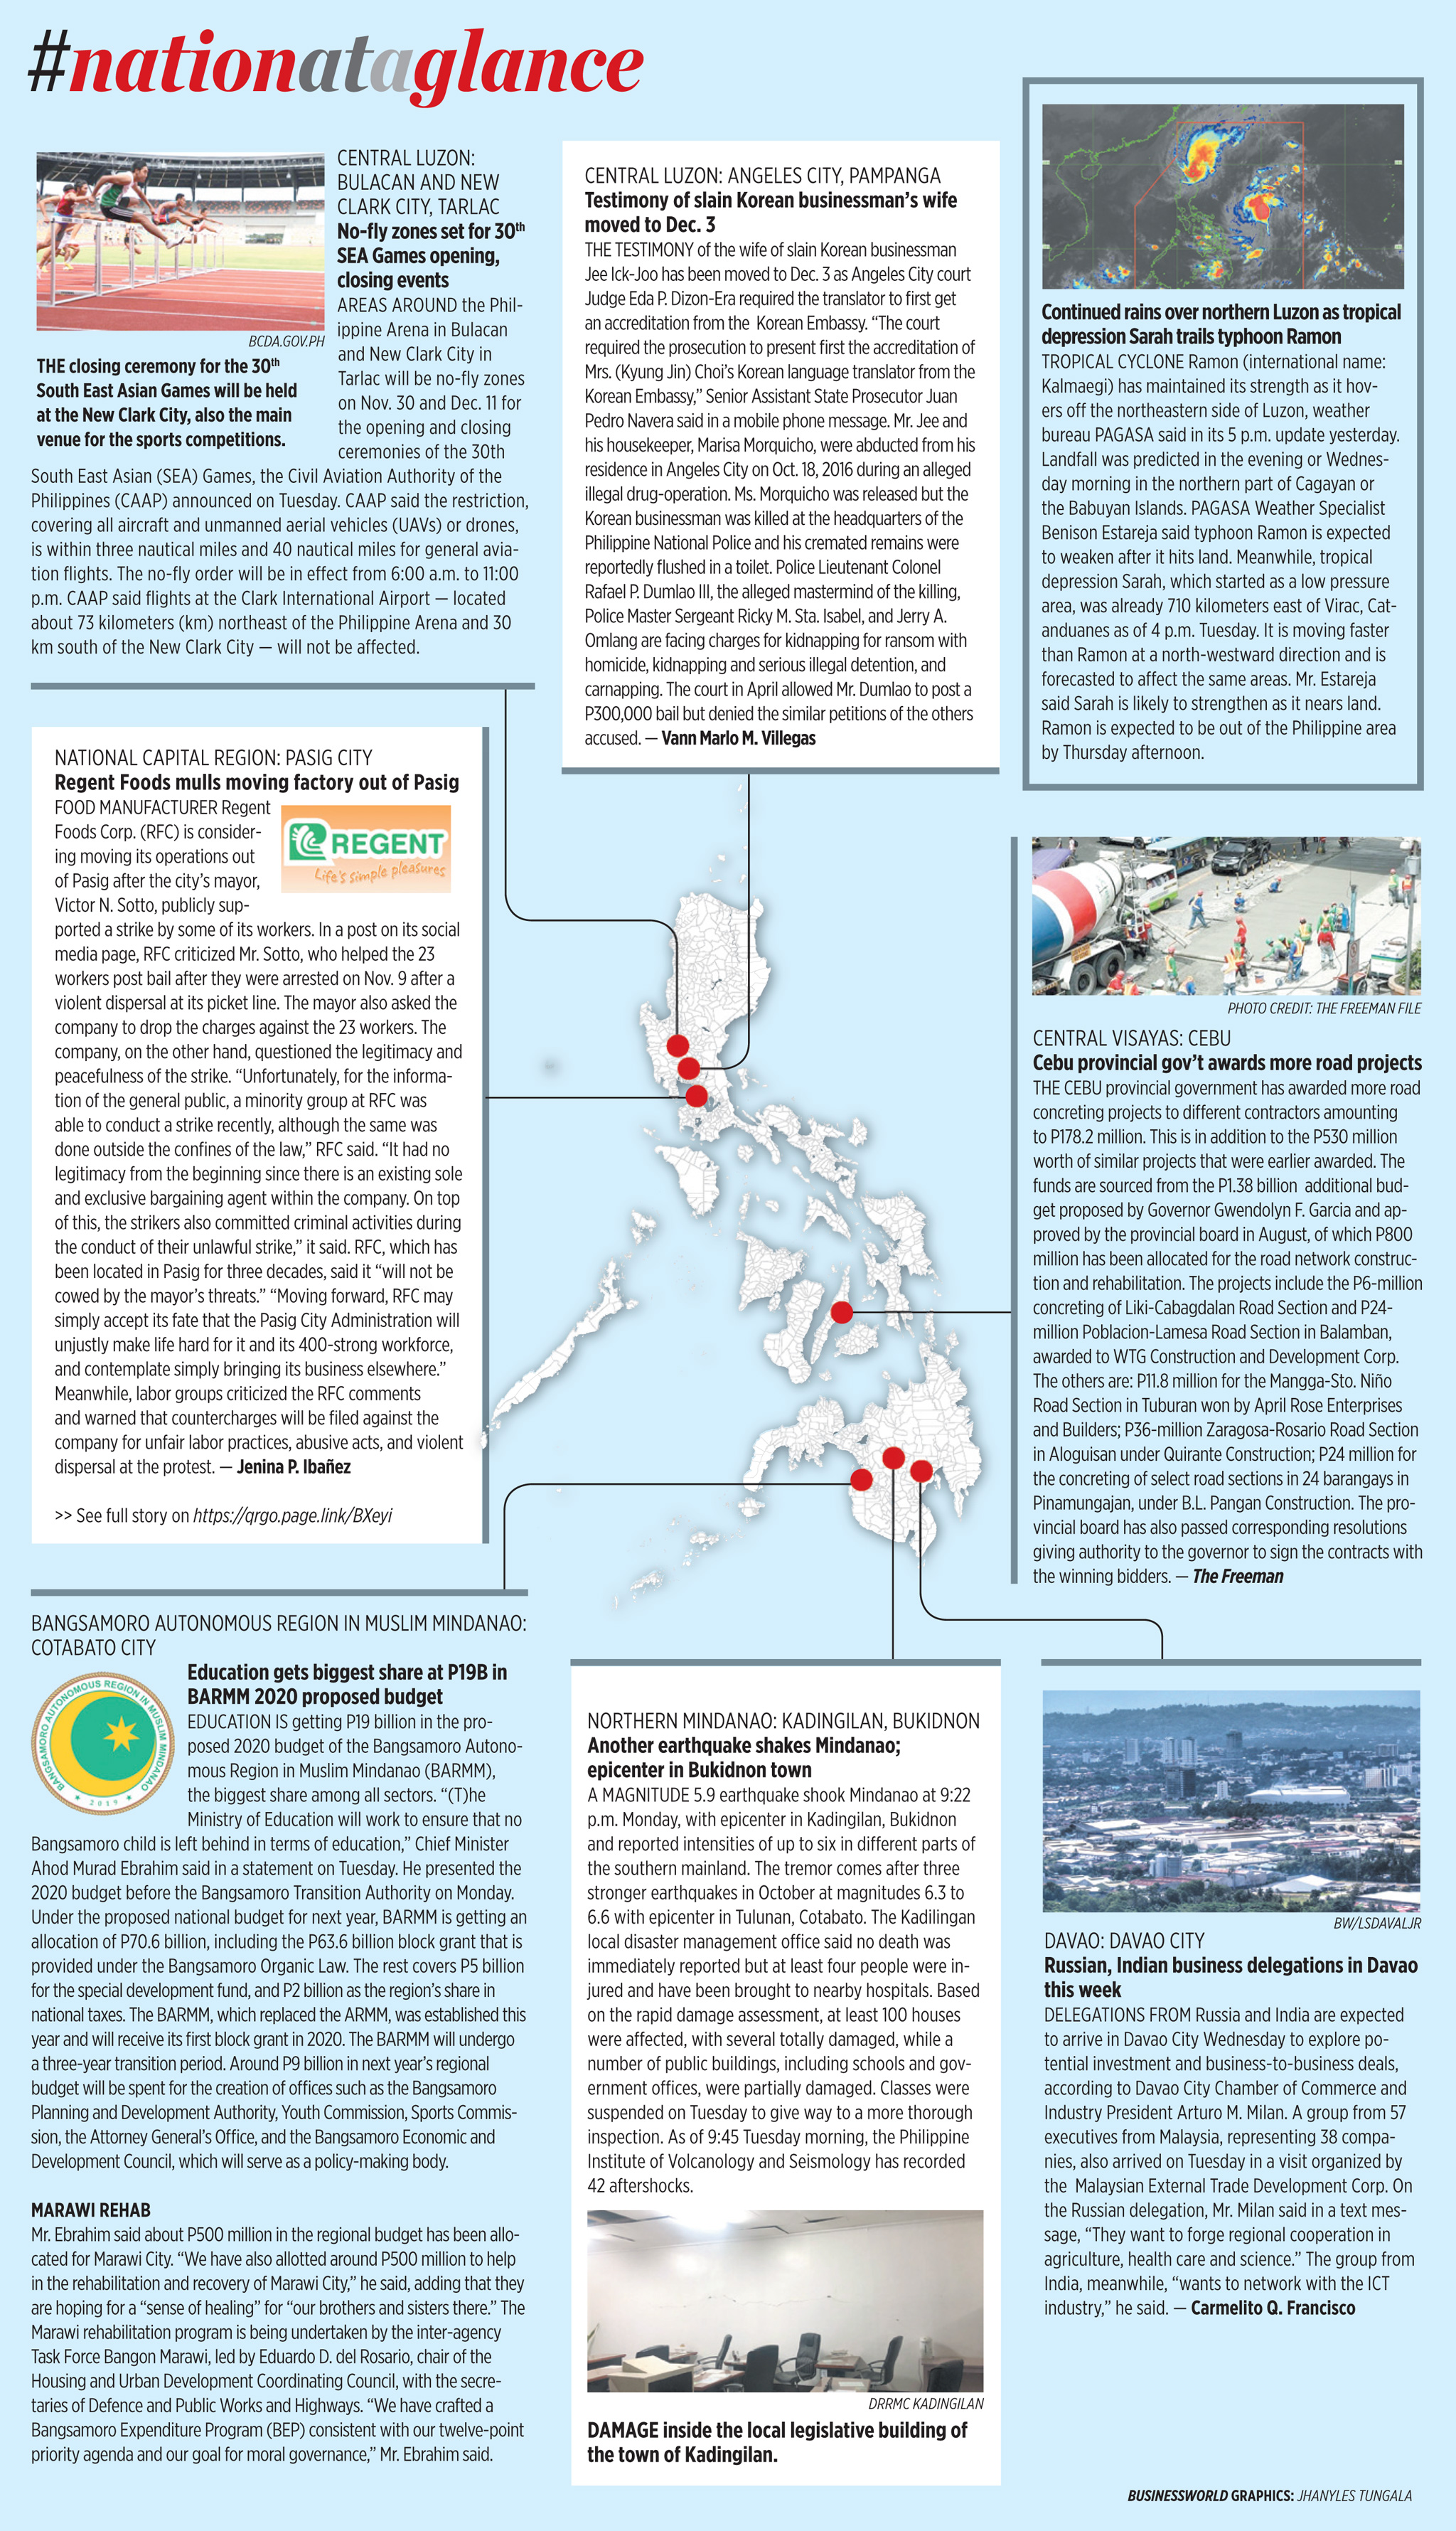 Nation at a Glance — (11/20/19)